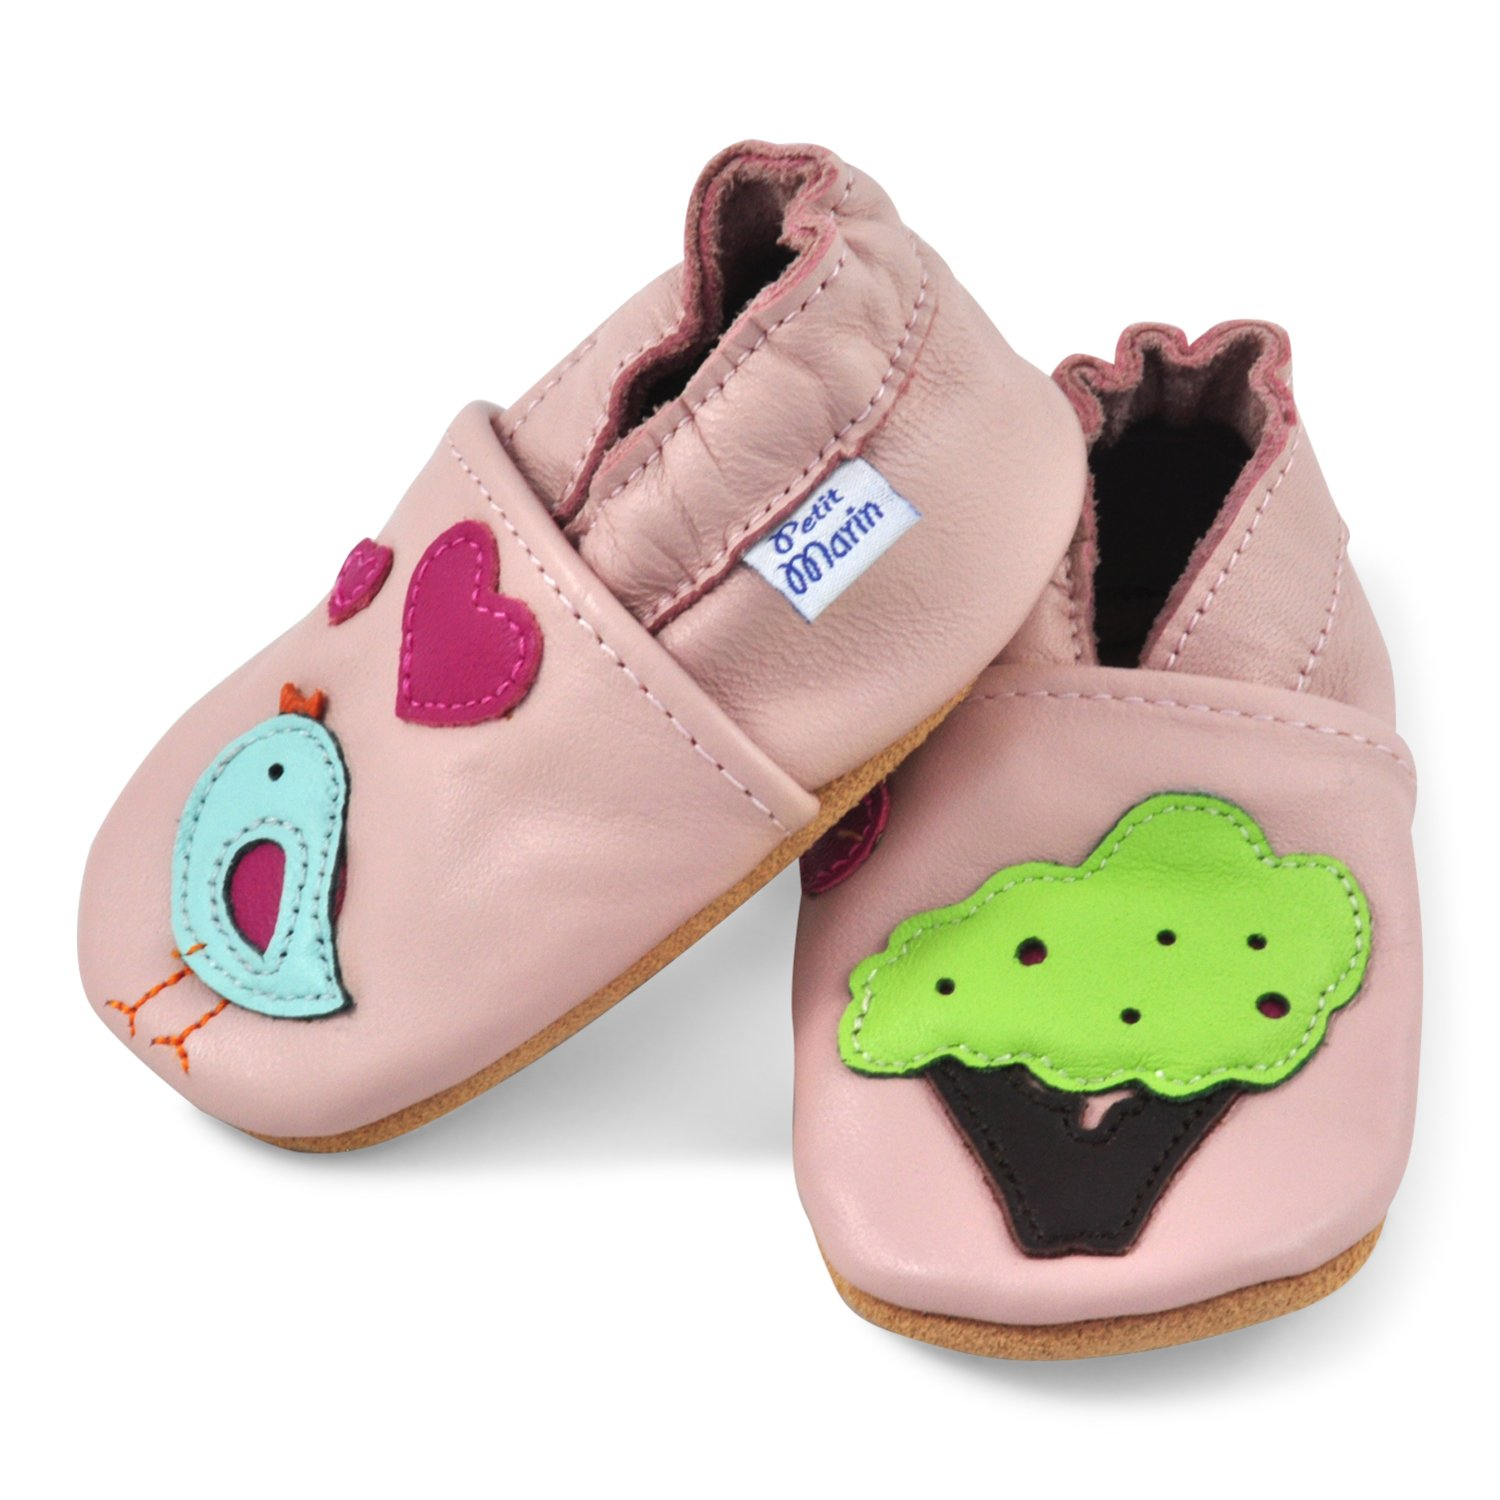 Petit Marin Soft Leather Baby Shoes